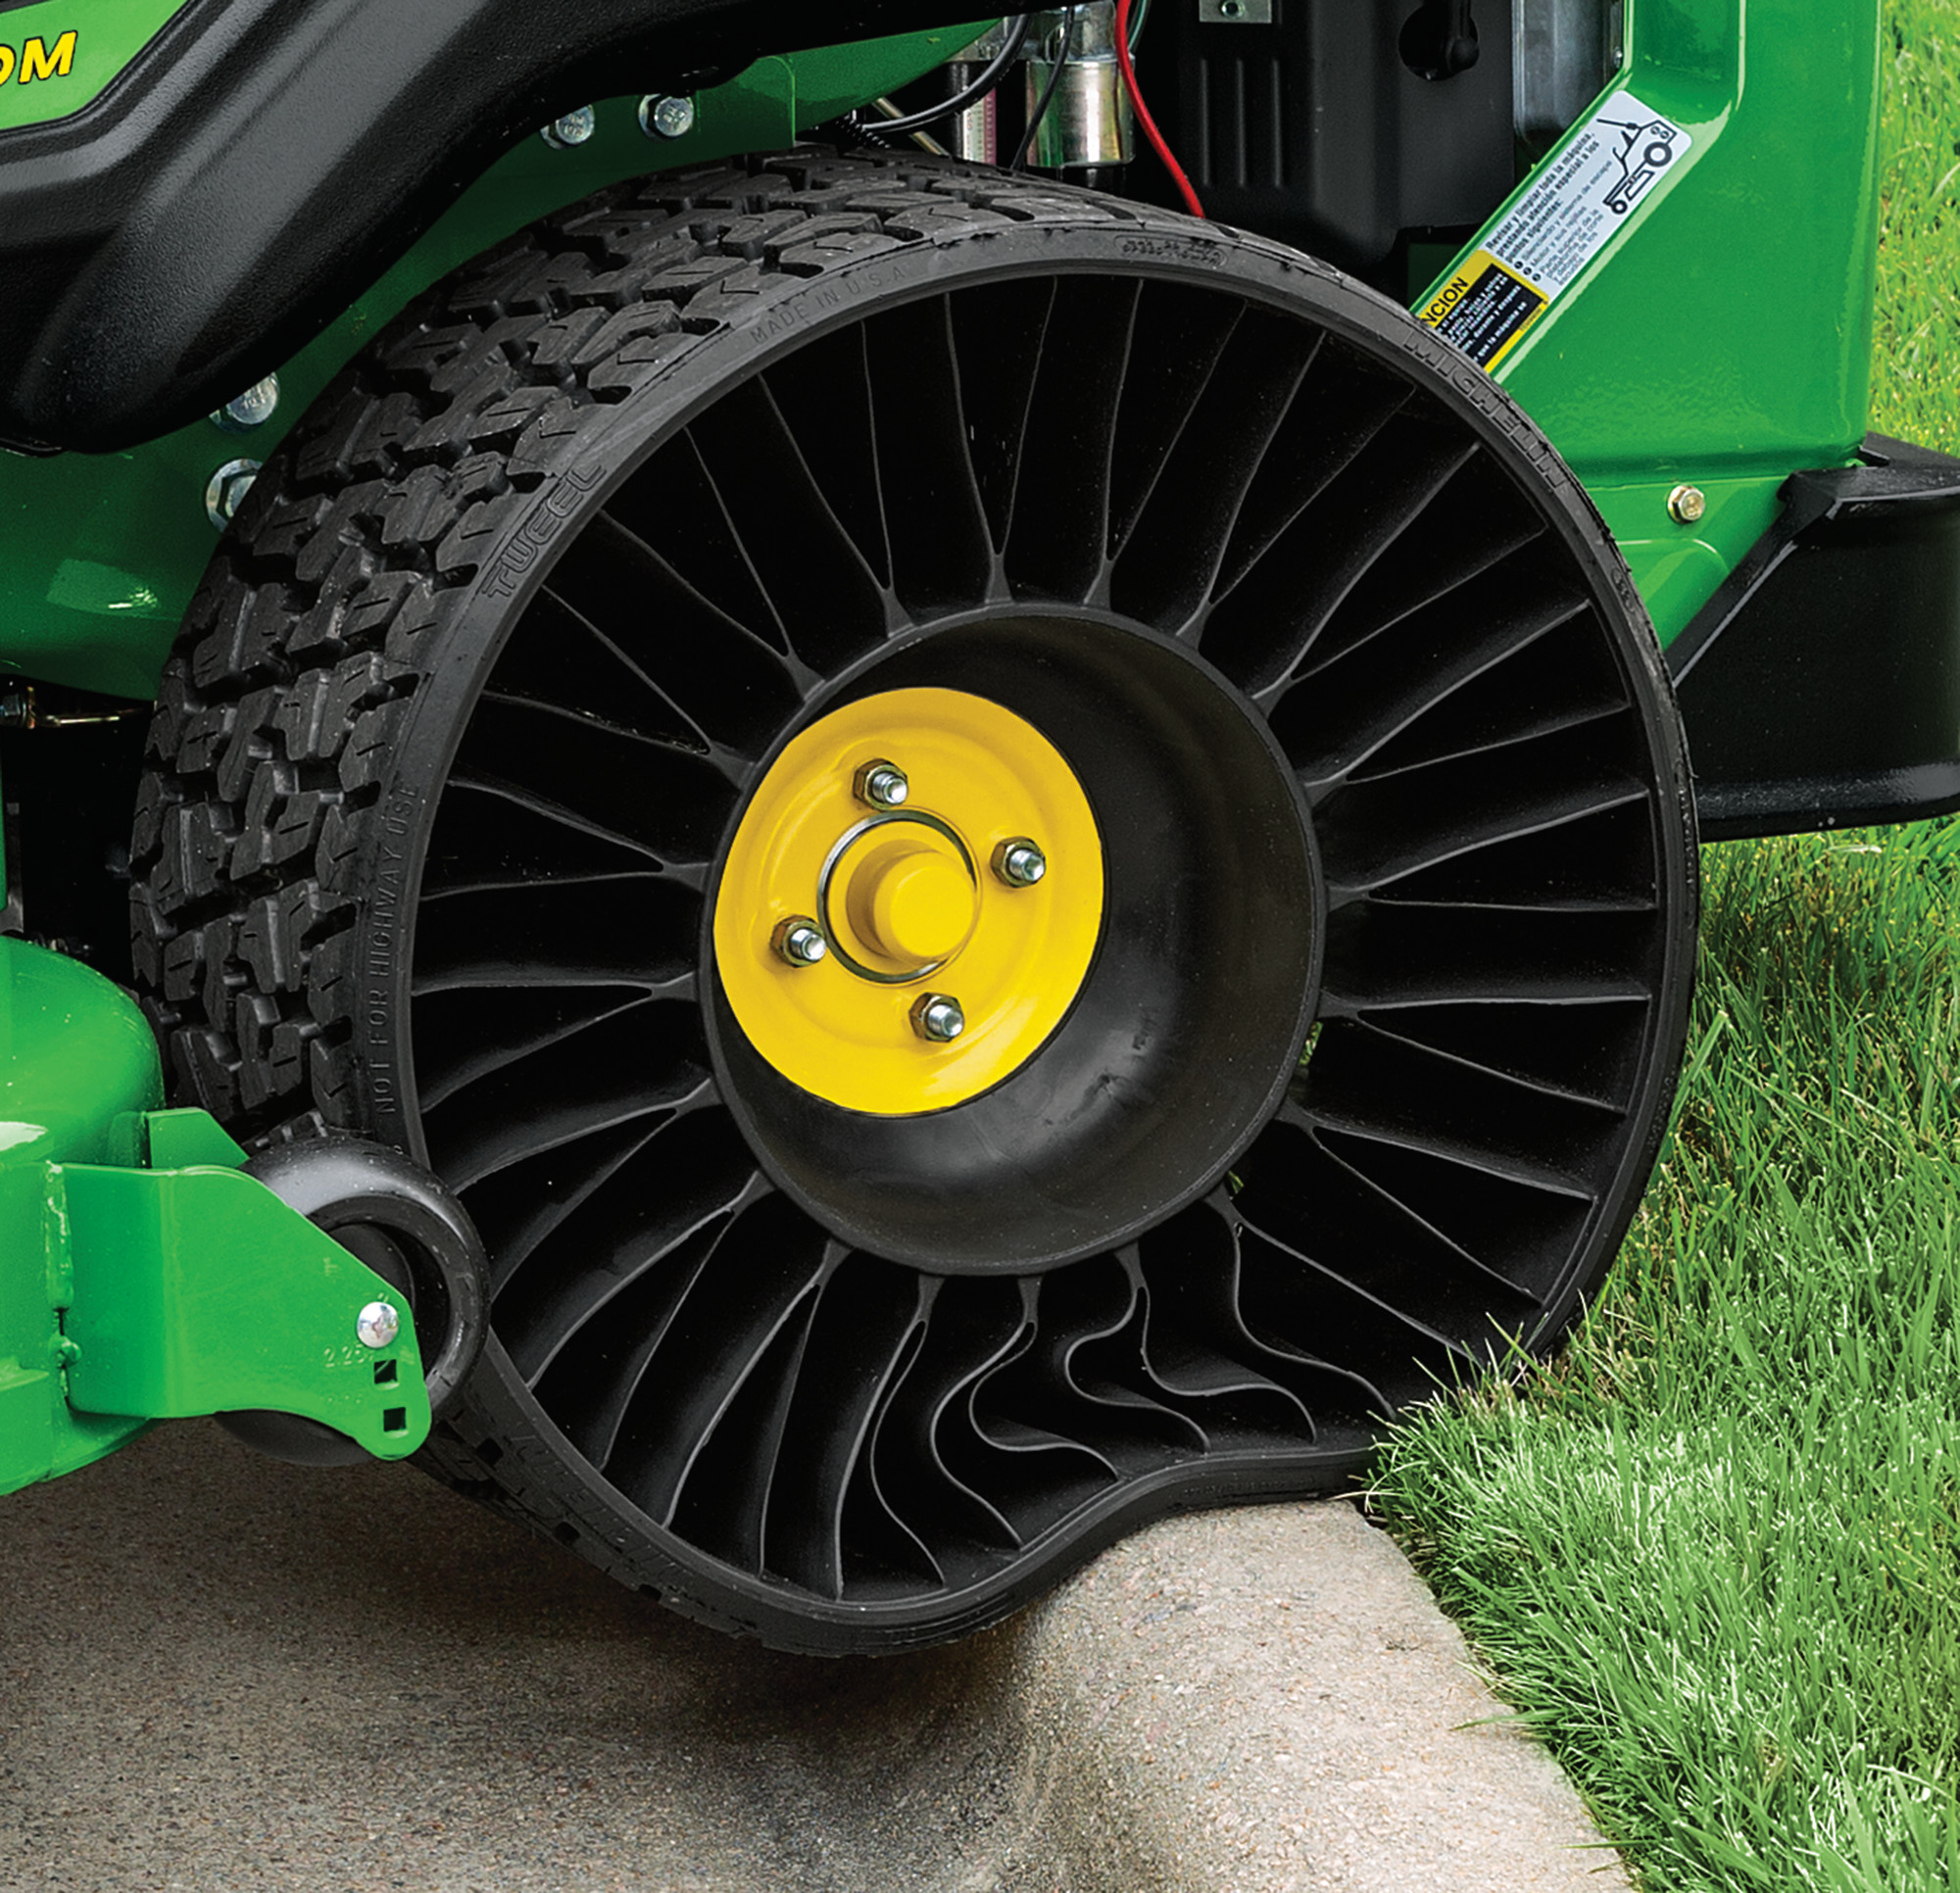 The new Z994R commercial zero-turn rotary mower & Michelin X Tweel Turf airless radial tyre make their debut at SALTEX 2018 at the NEC, Birmingham in November.